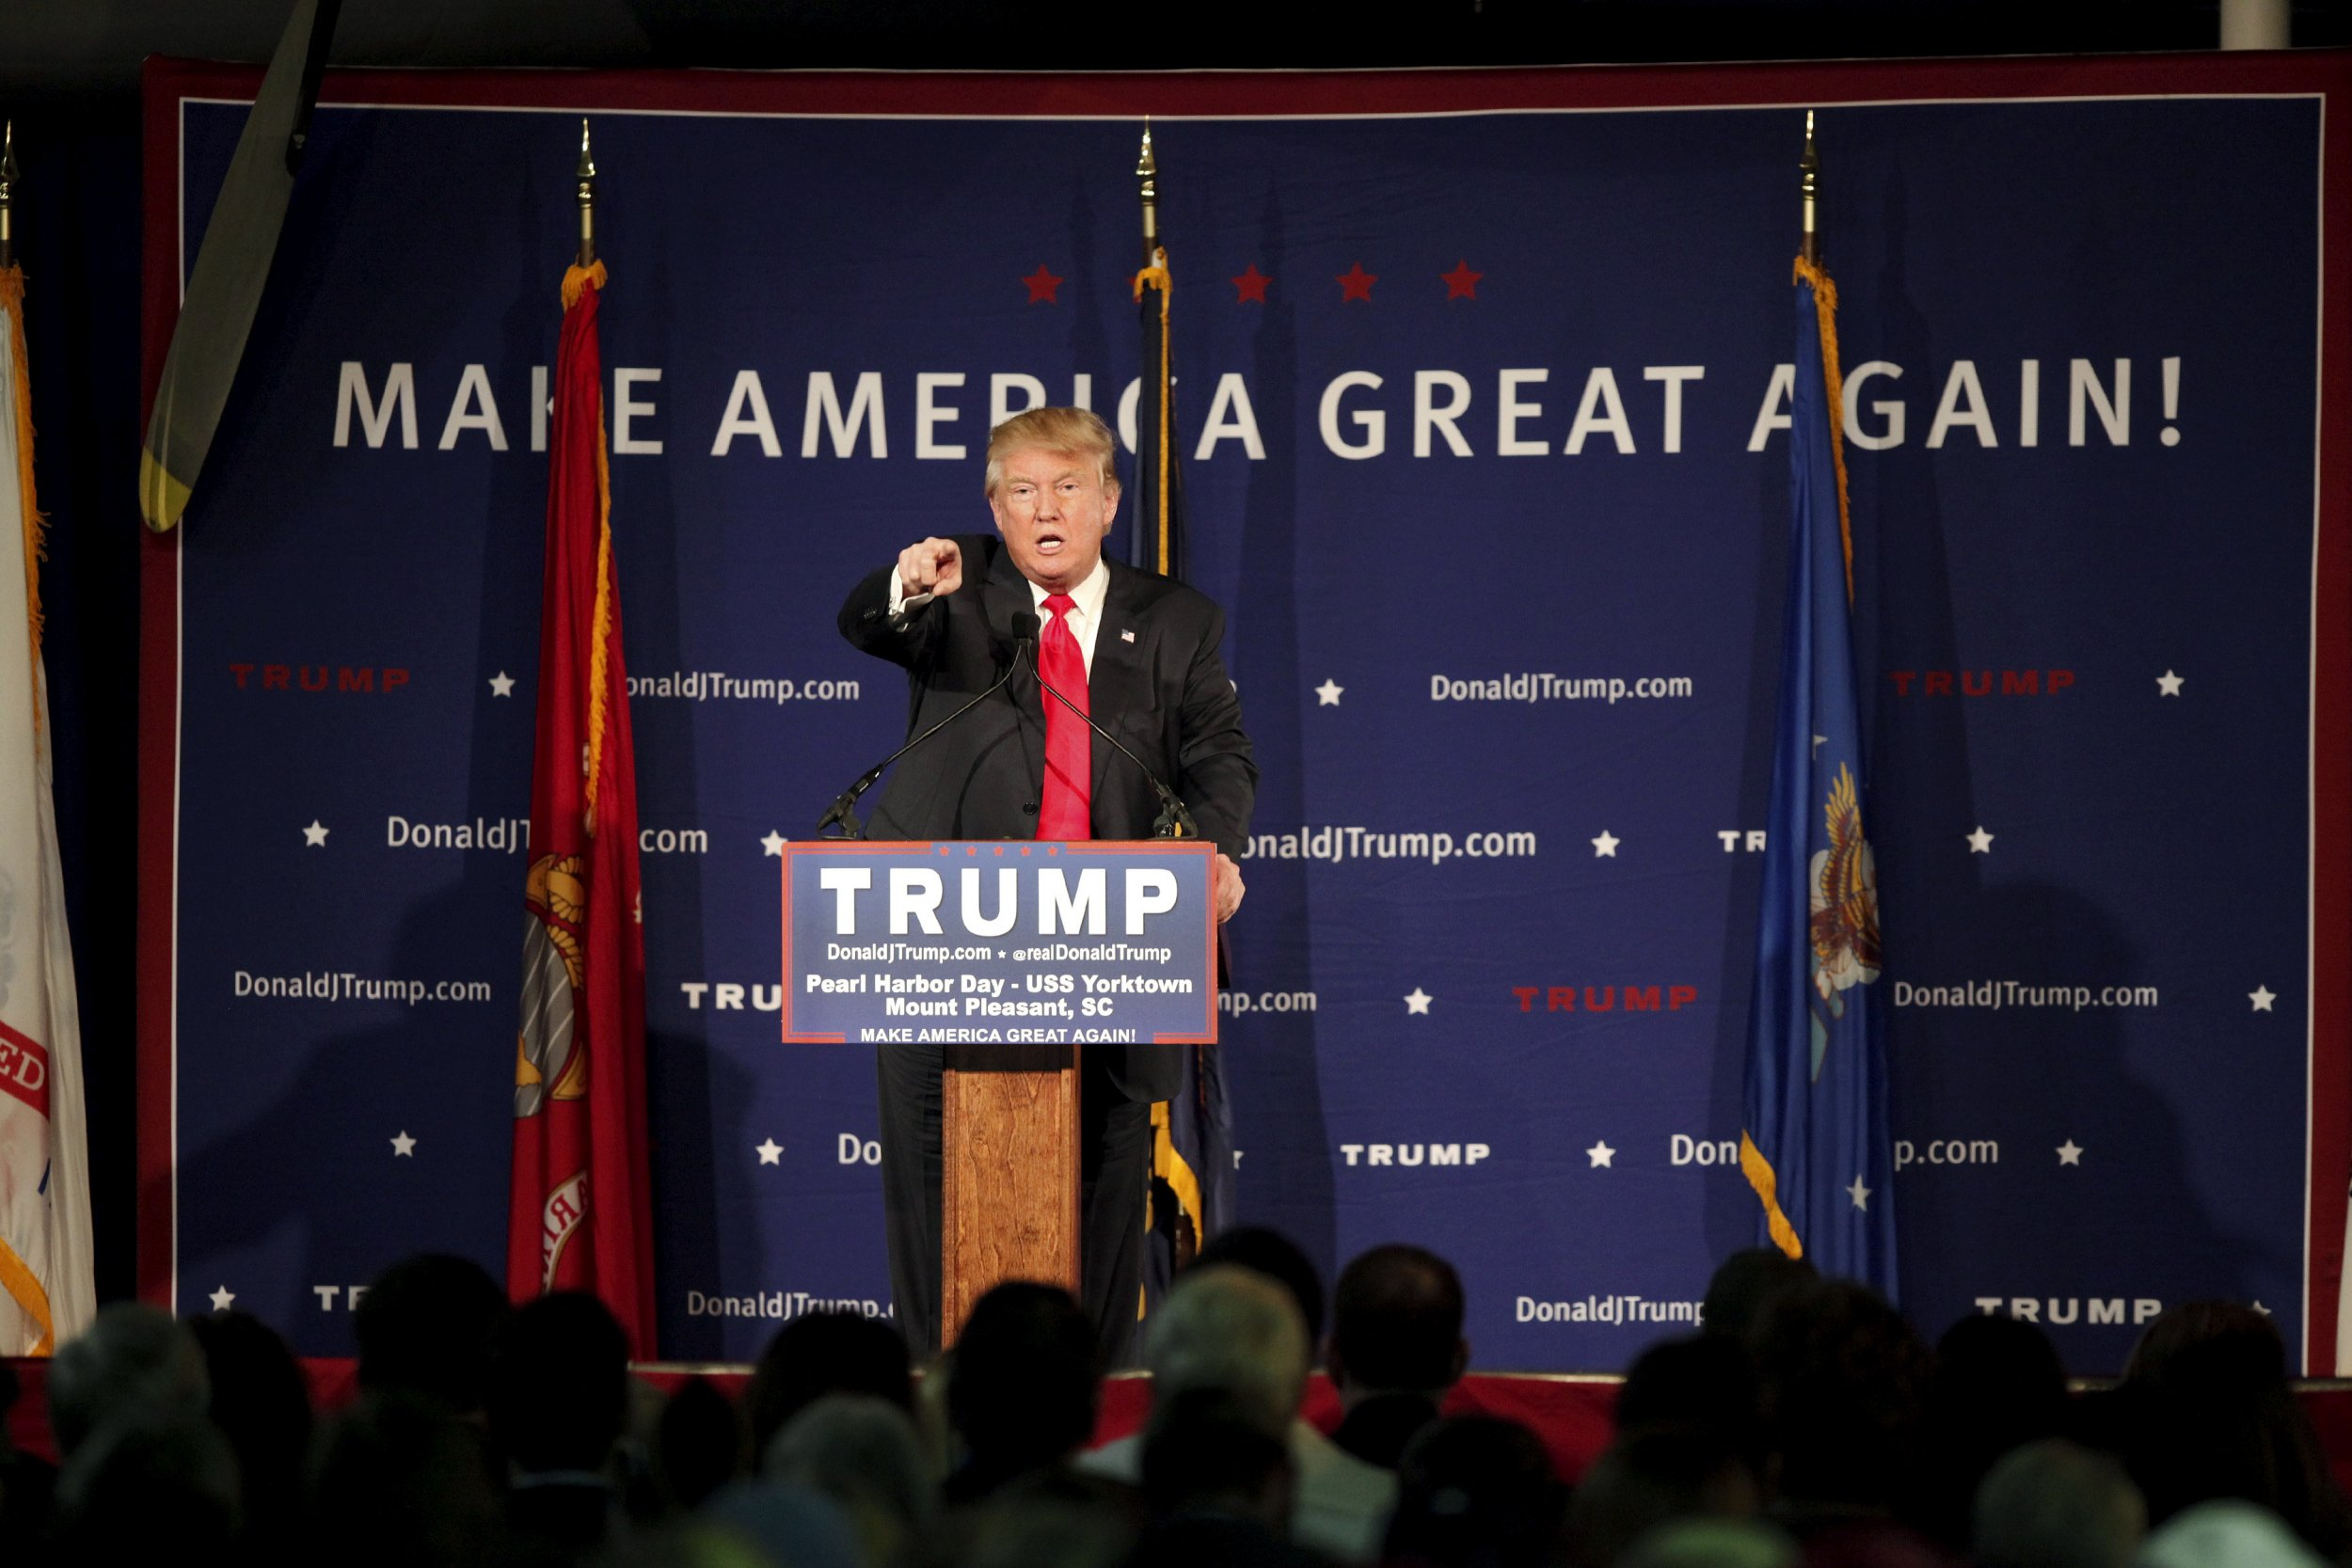 Republican presidential candidate Donald Trump at a rally.